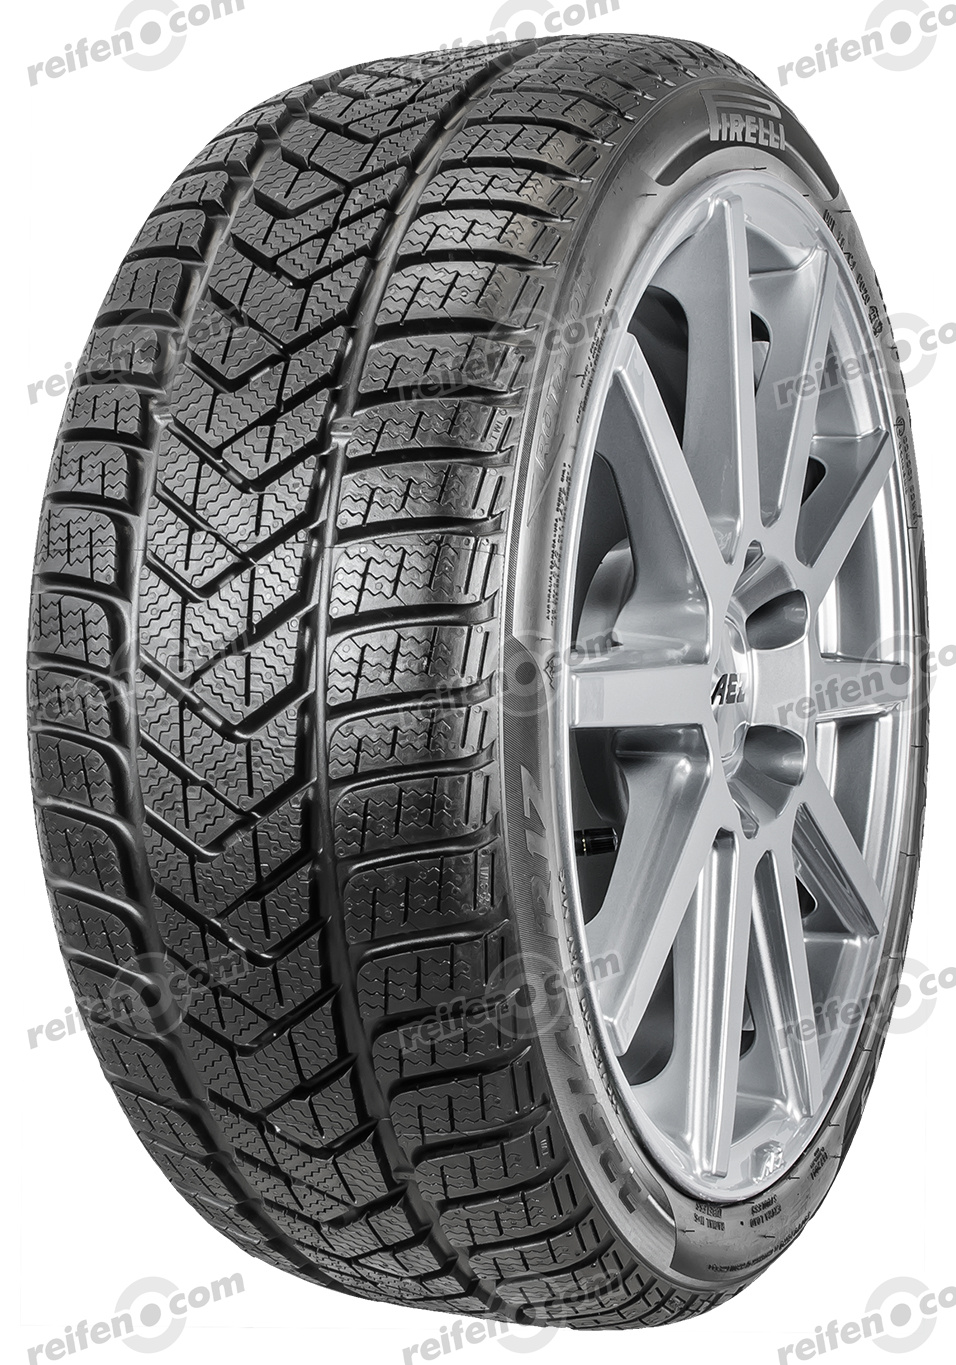 215/60 R16 99H Winter Sottozero 3 XL KS  Winter Sottozero 3 XL KS